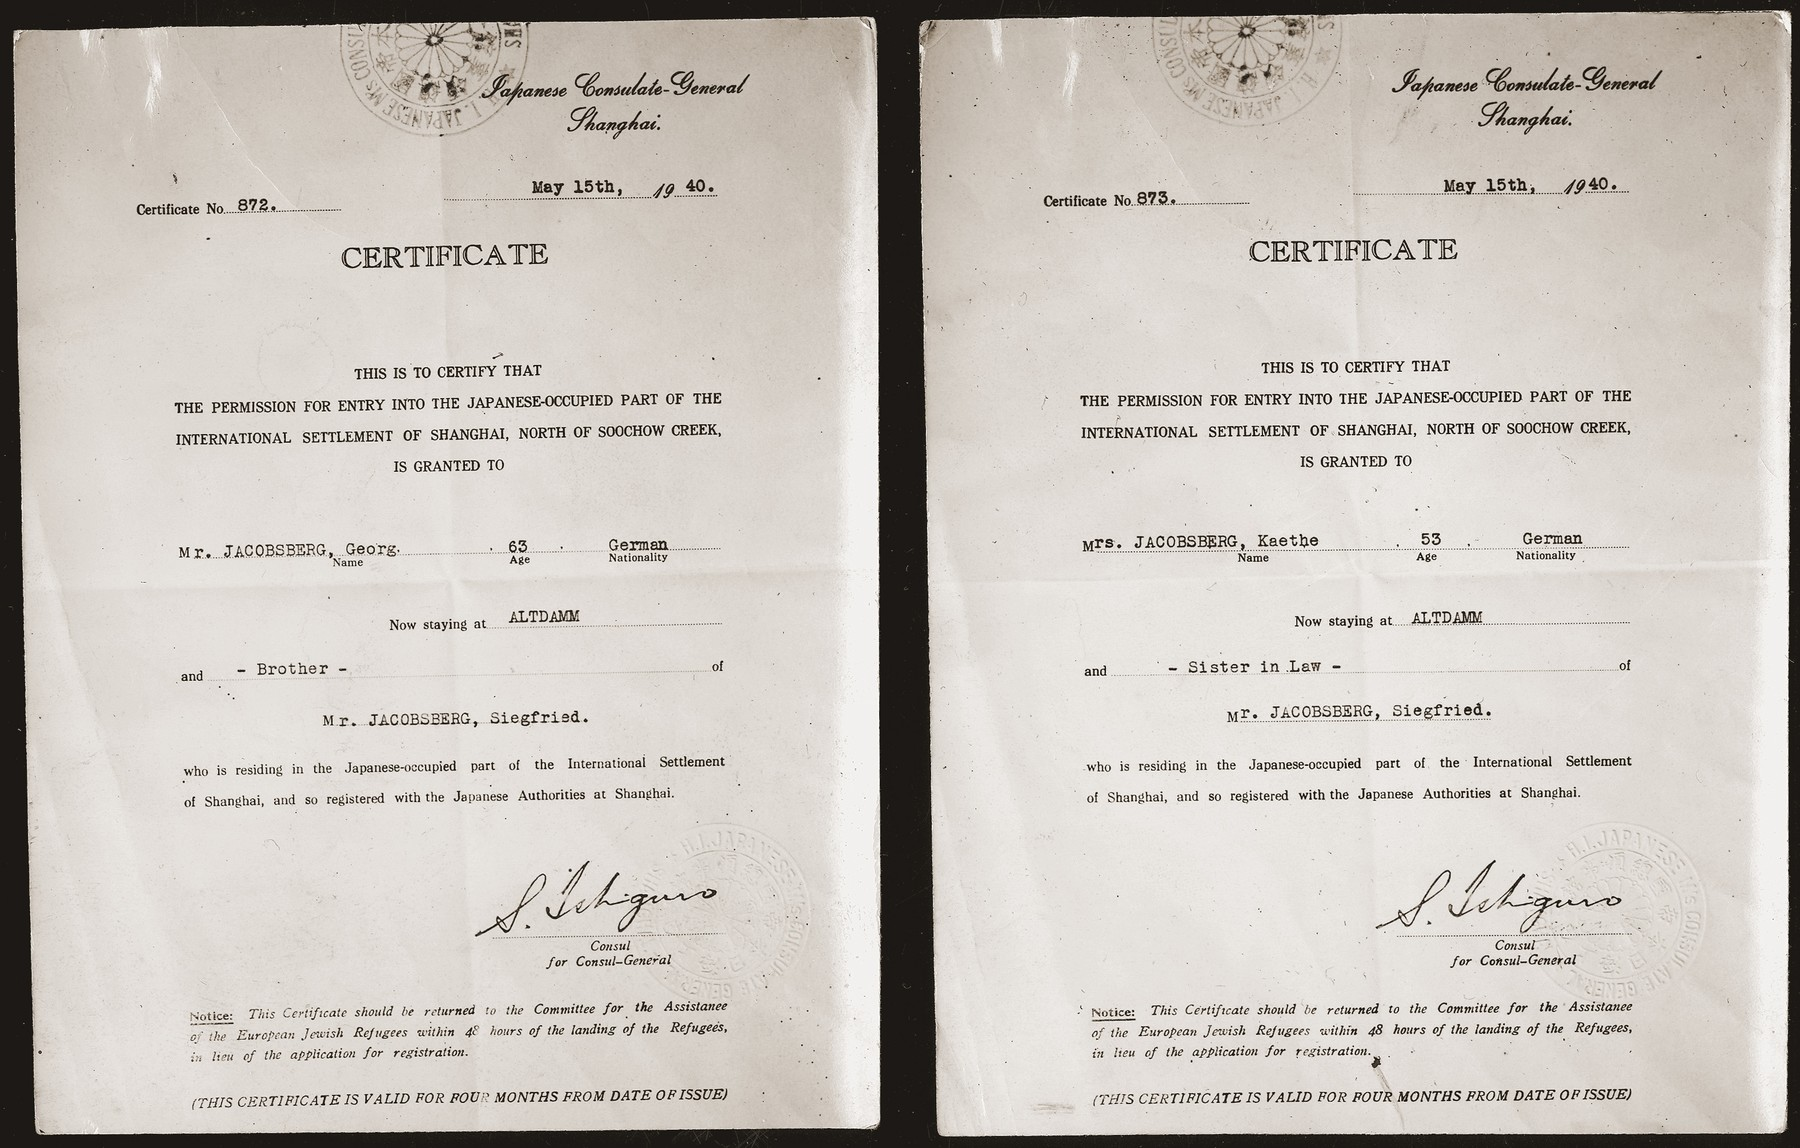 Certified copies of Japanese entry permits to Shanghai obtained by Siegfried Jacobsberg for his brother and sister-in-law in Altdamm (a suburb of Stettin).  By the time the couple received the originals, however, they were no longer allowed to leave Germany.  Both were deported to Lublin and perished.